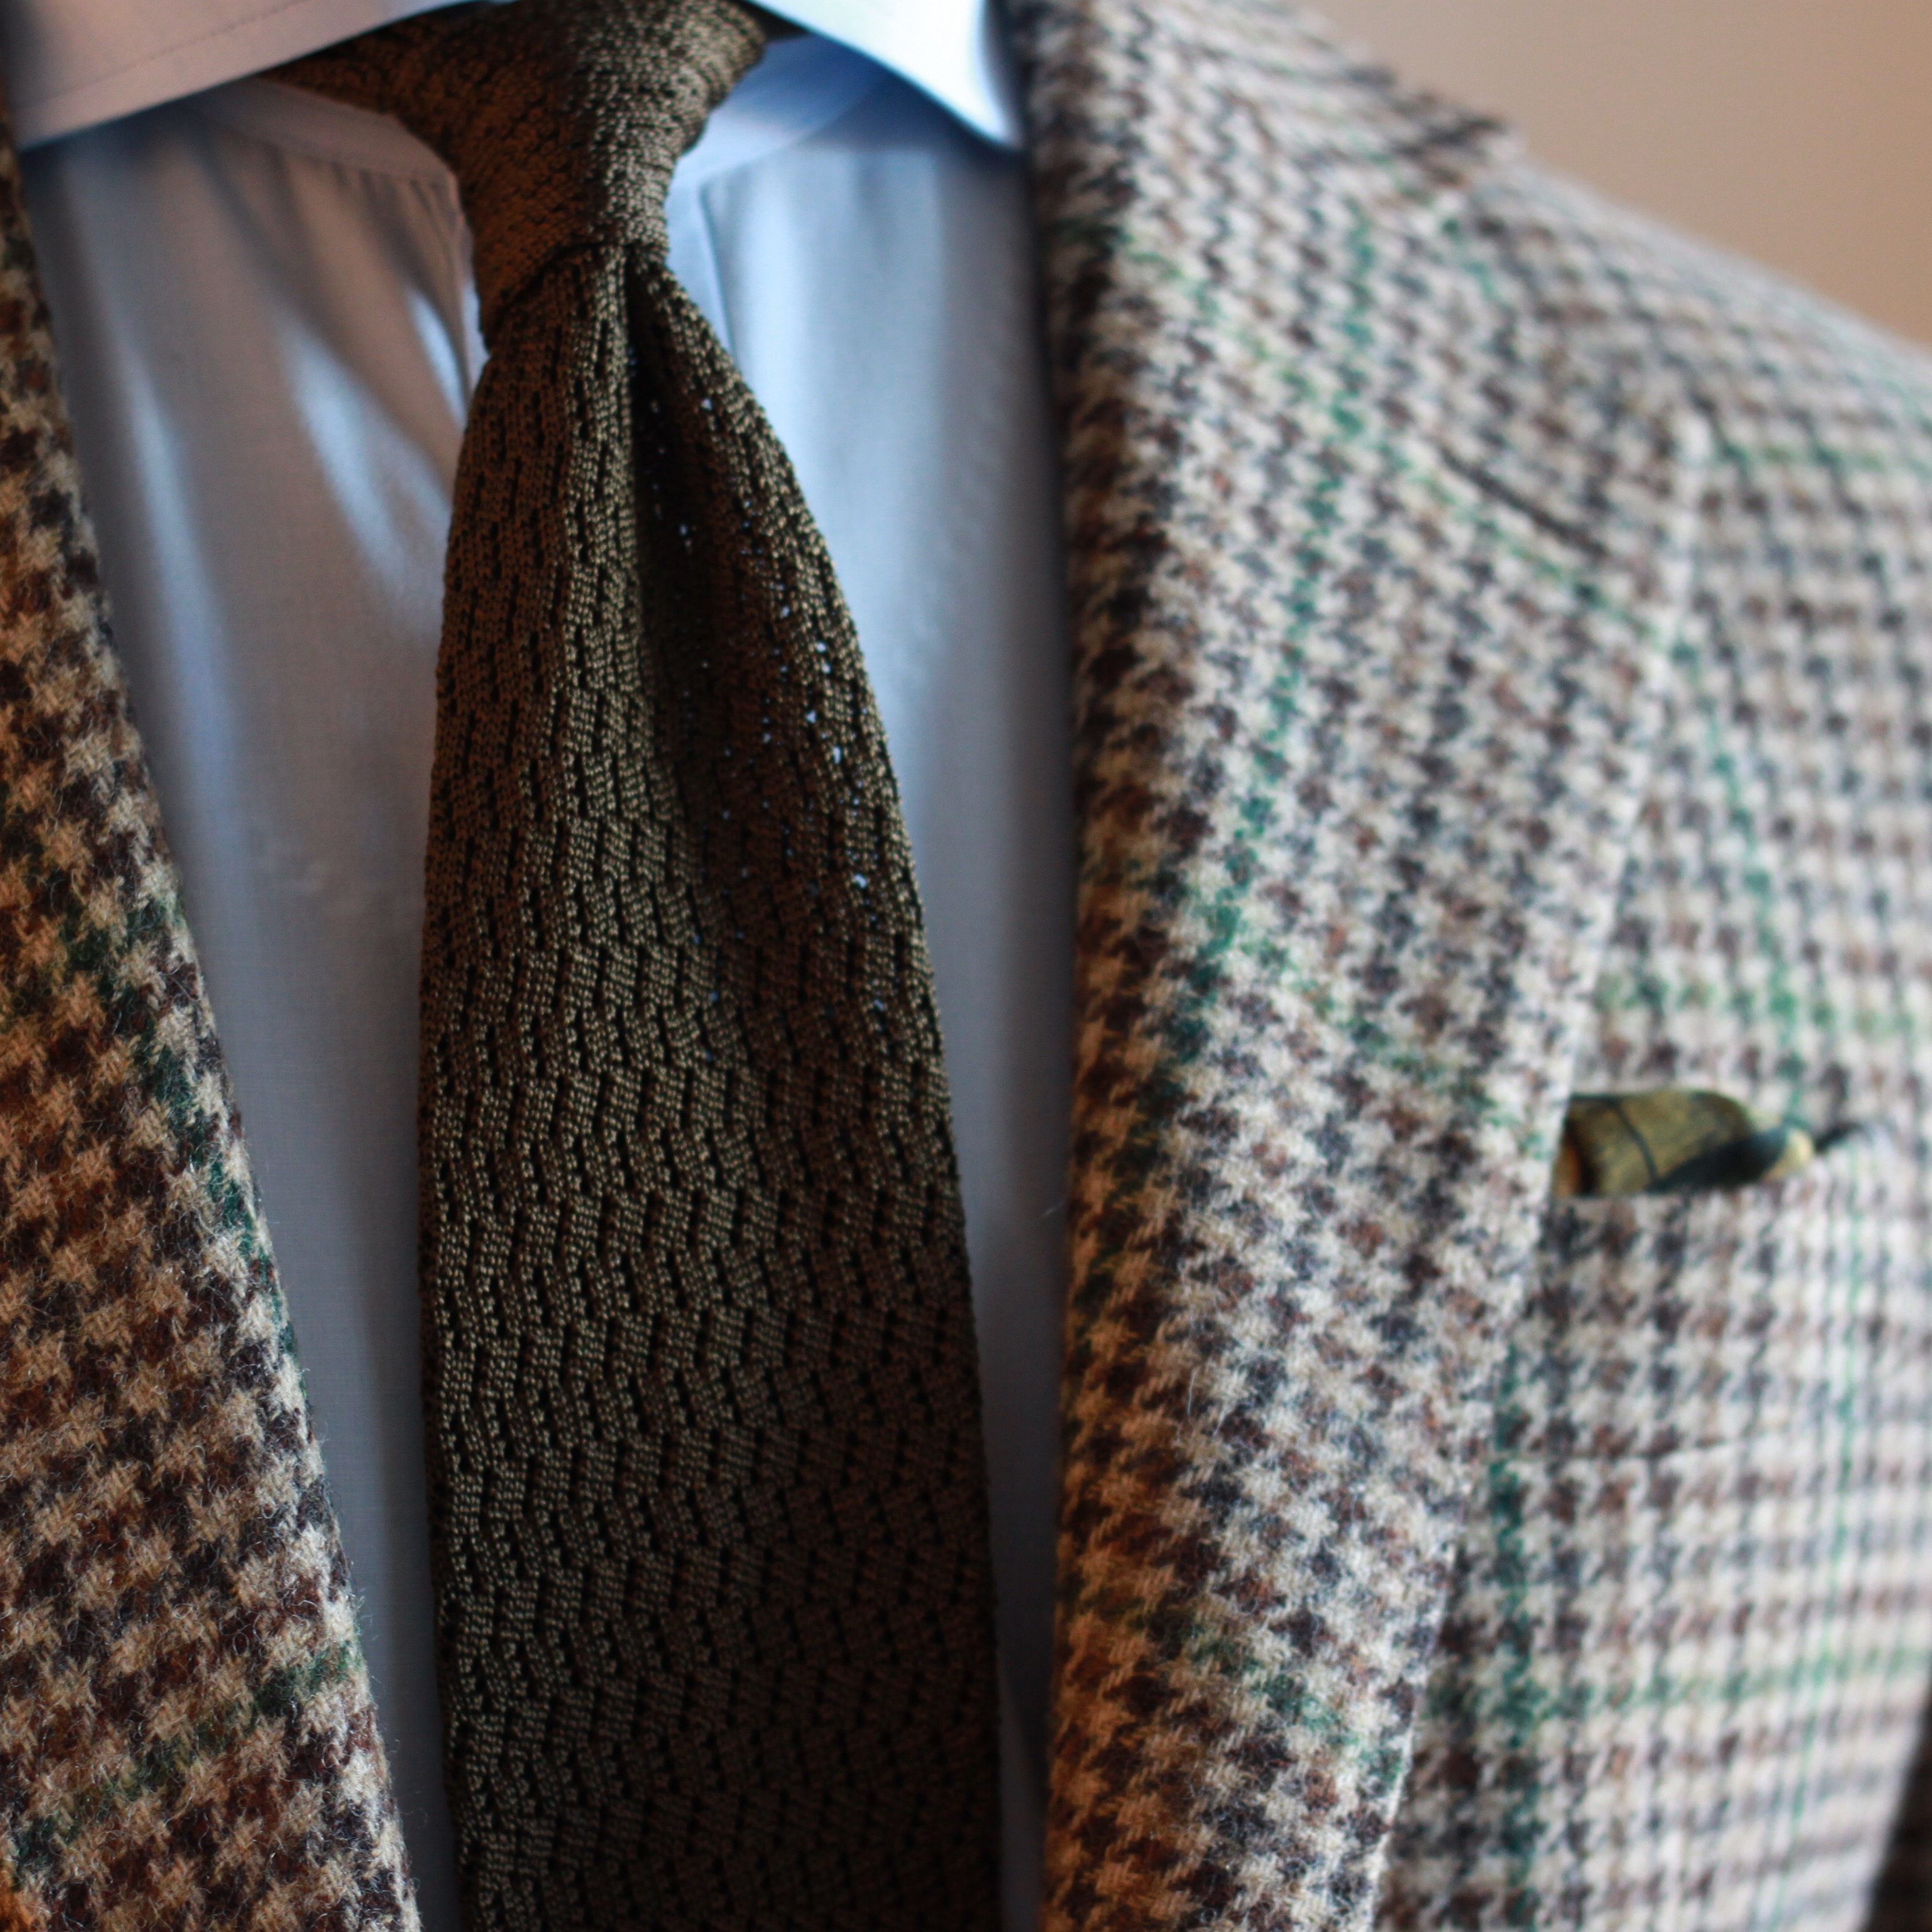 guncheck, tweed, sport coat, knit tie, zig zag knit tie, pocket square, oxford rowe, spier mackay, kent wang